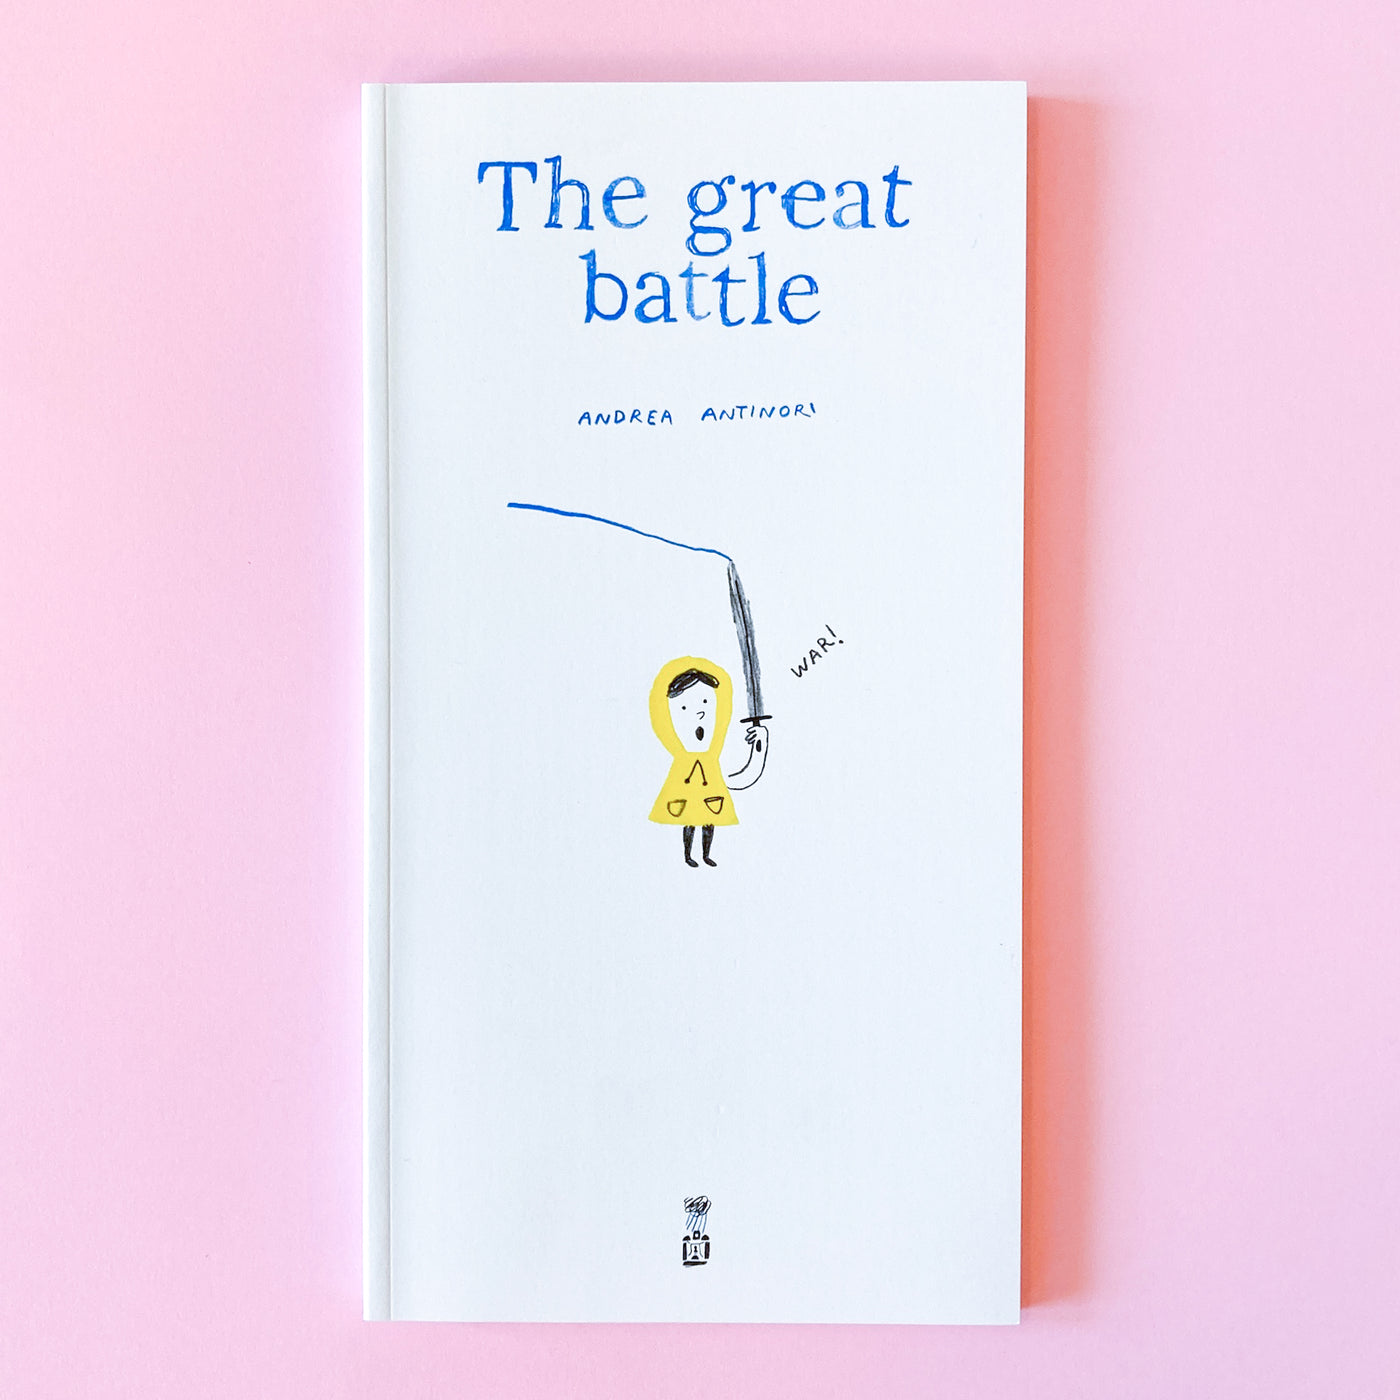 The Great Battle by Andrea Antinori